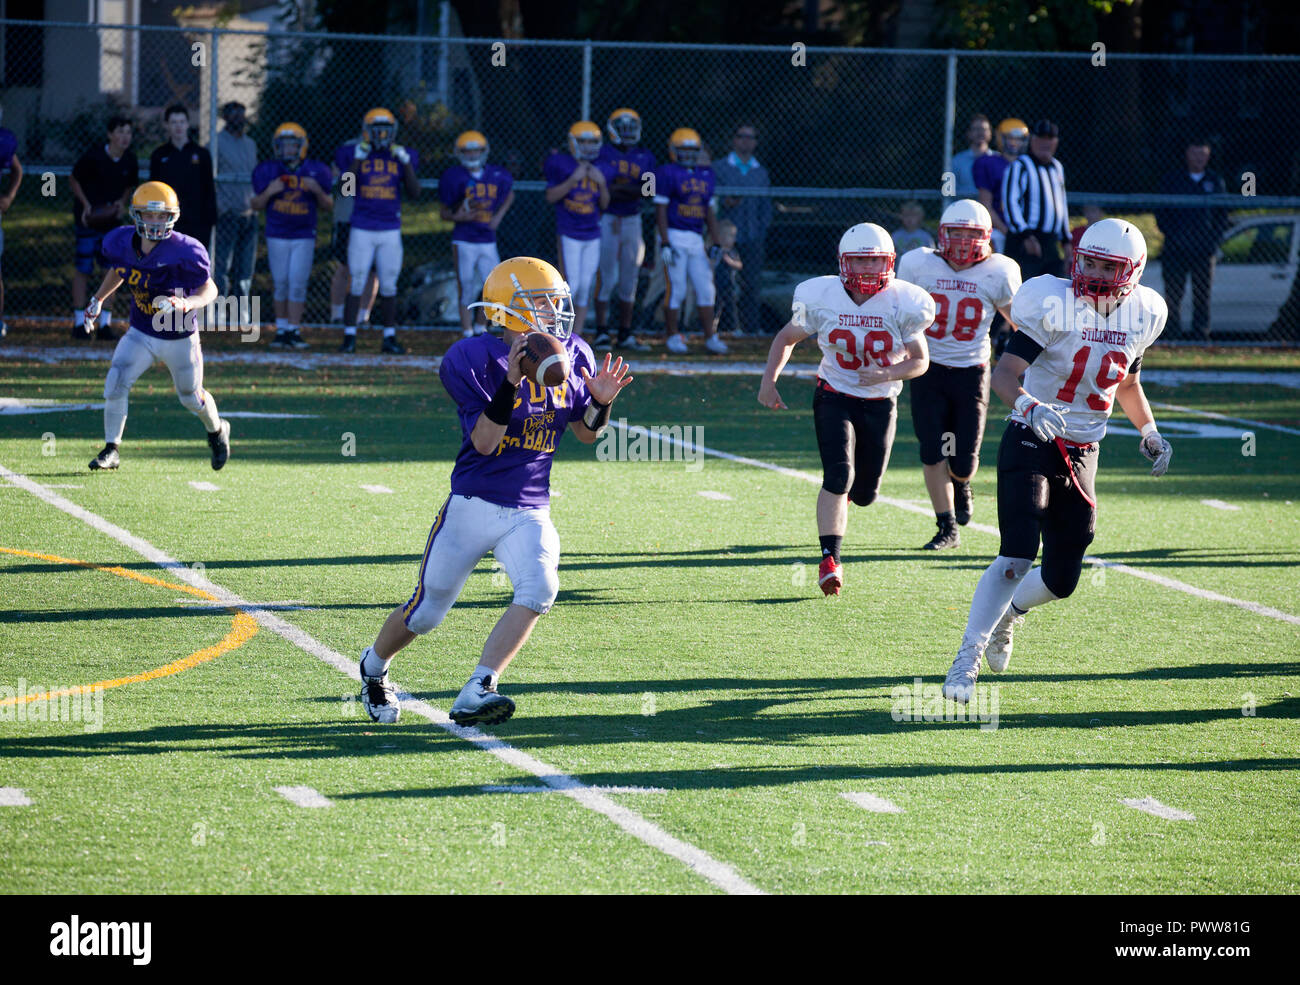 Cretin-Durham Hall High School quarterback runs a bootleg pass against Stillwater High School. St Paul Minnesota MN USA - Stock Image